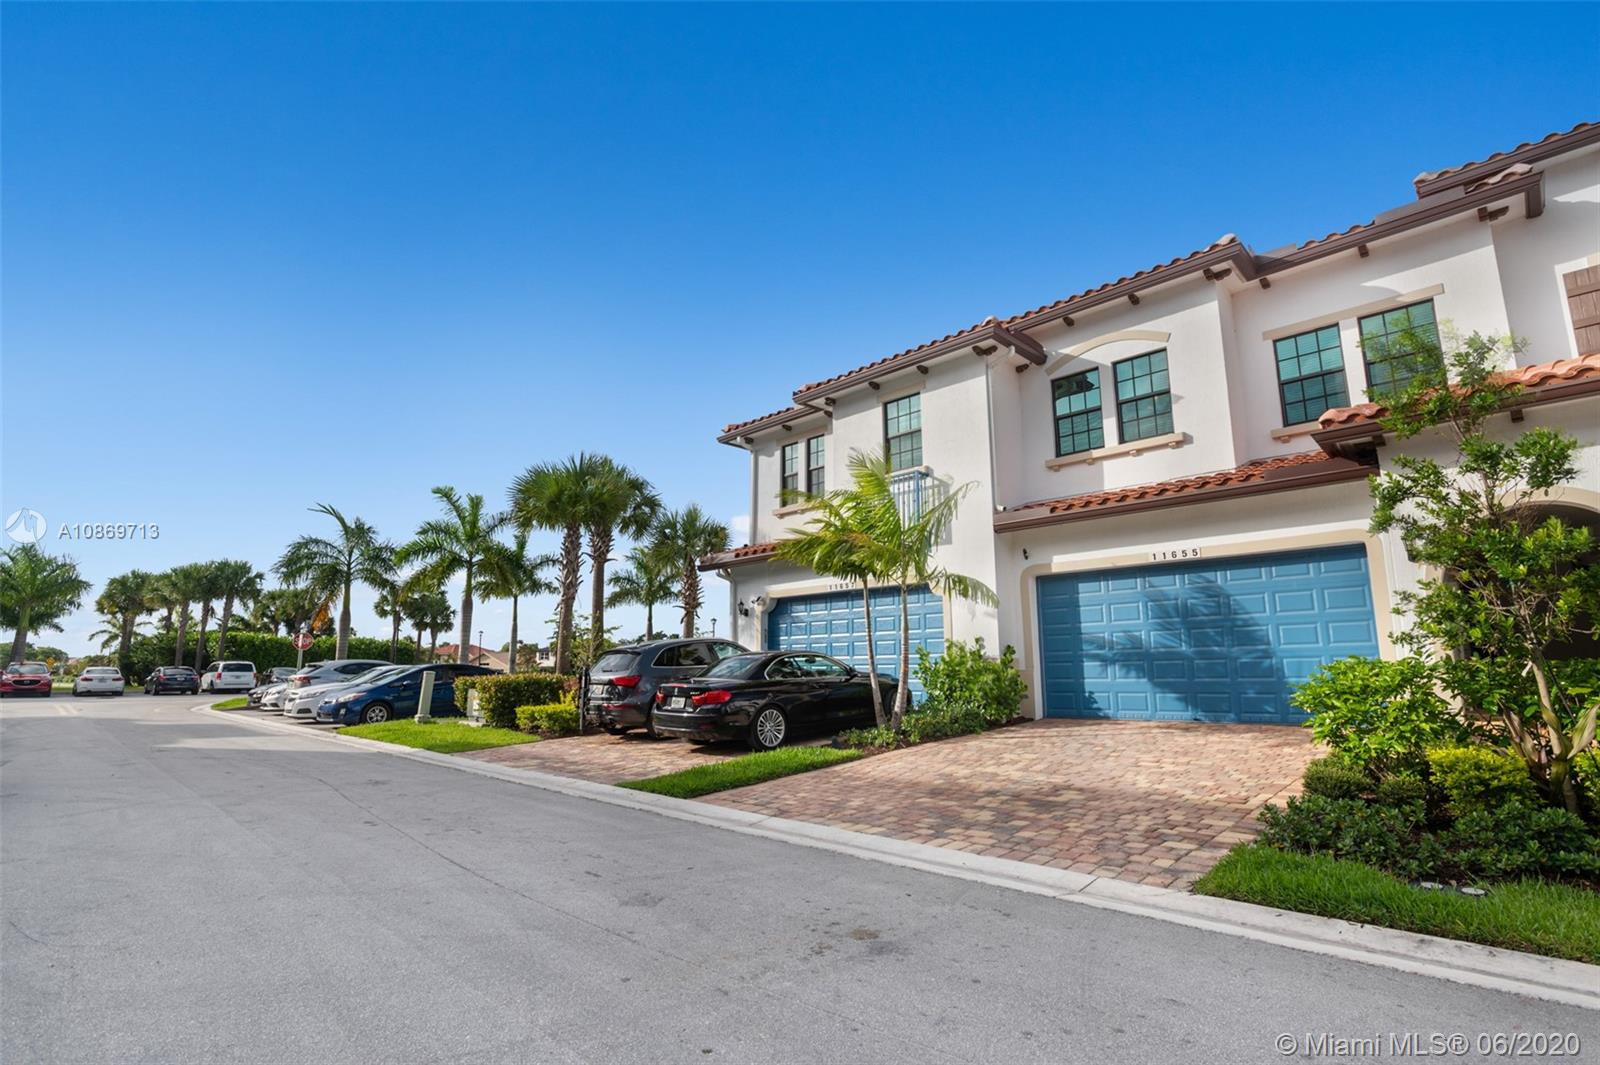 11655 SW 13th Drive #11655 For Sale A10869713, FL